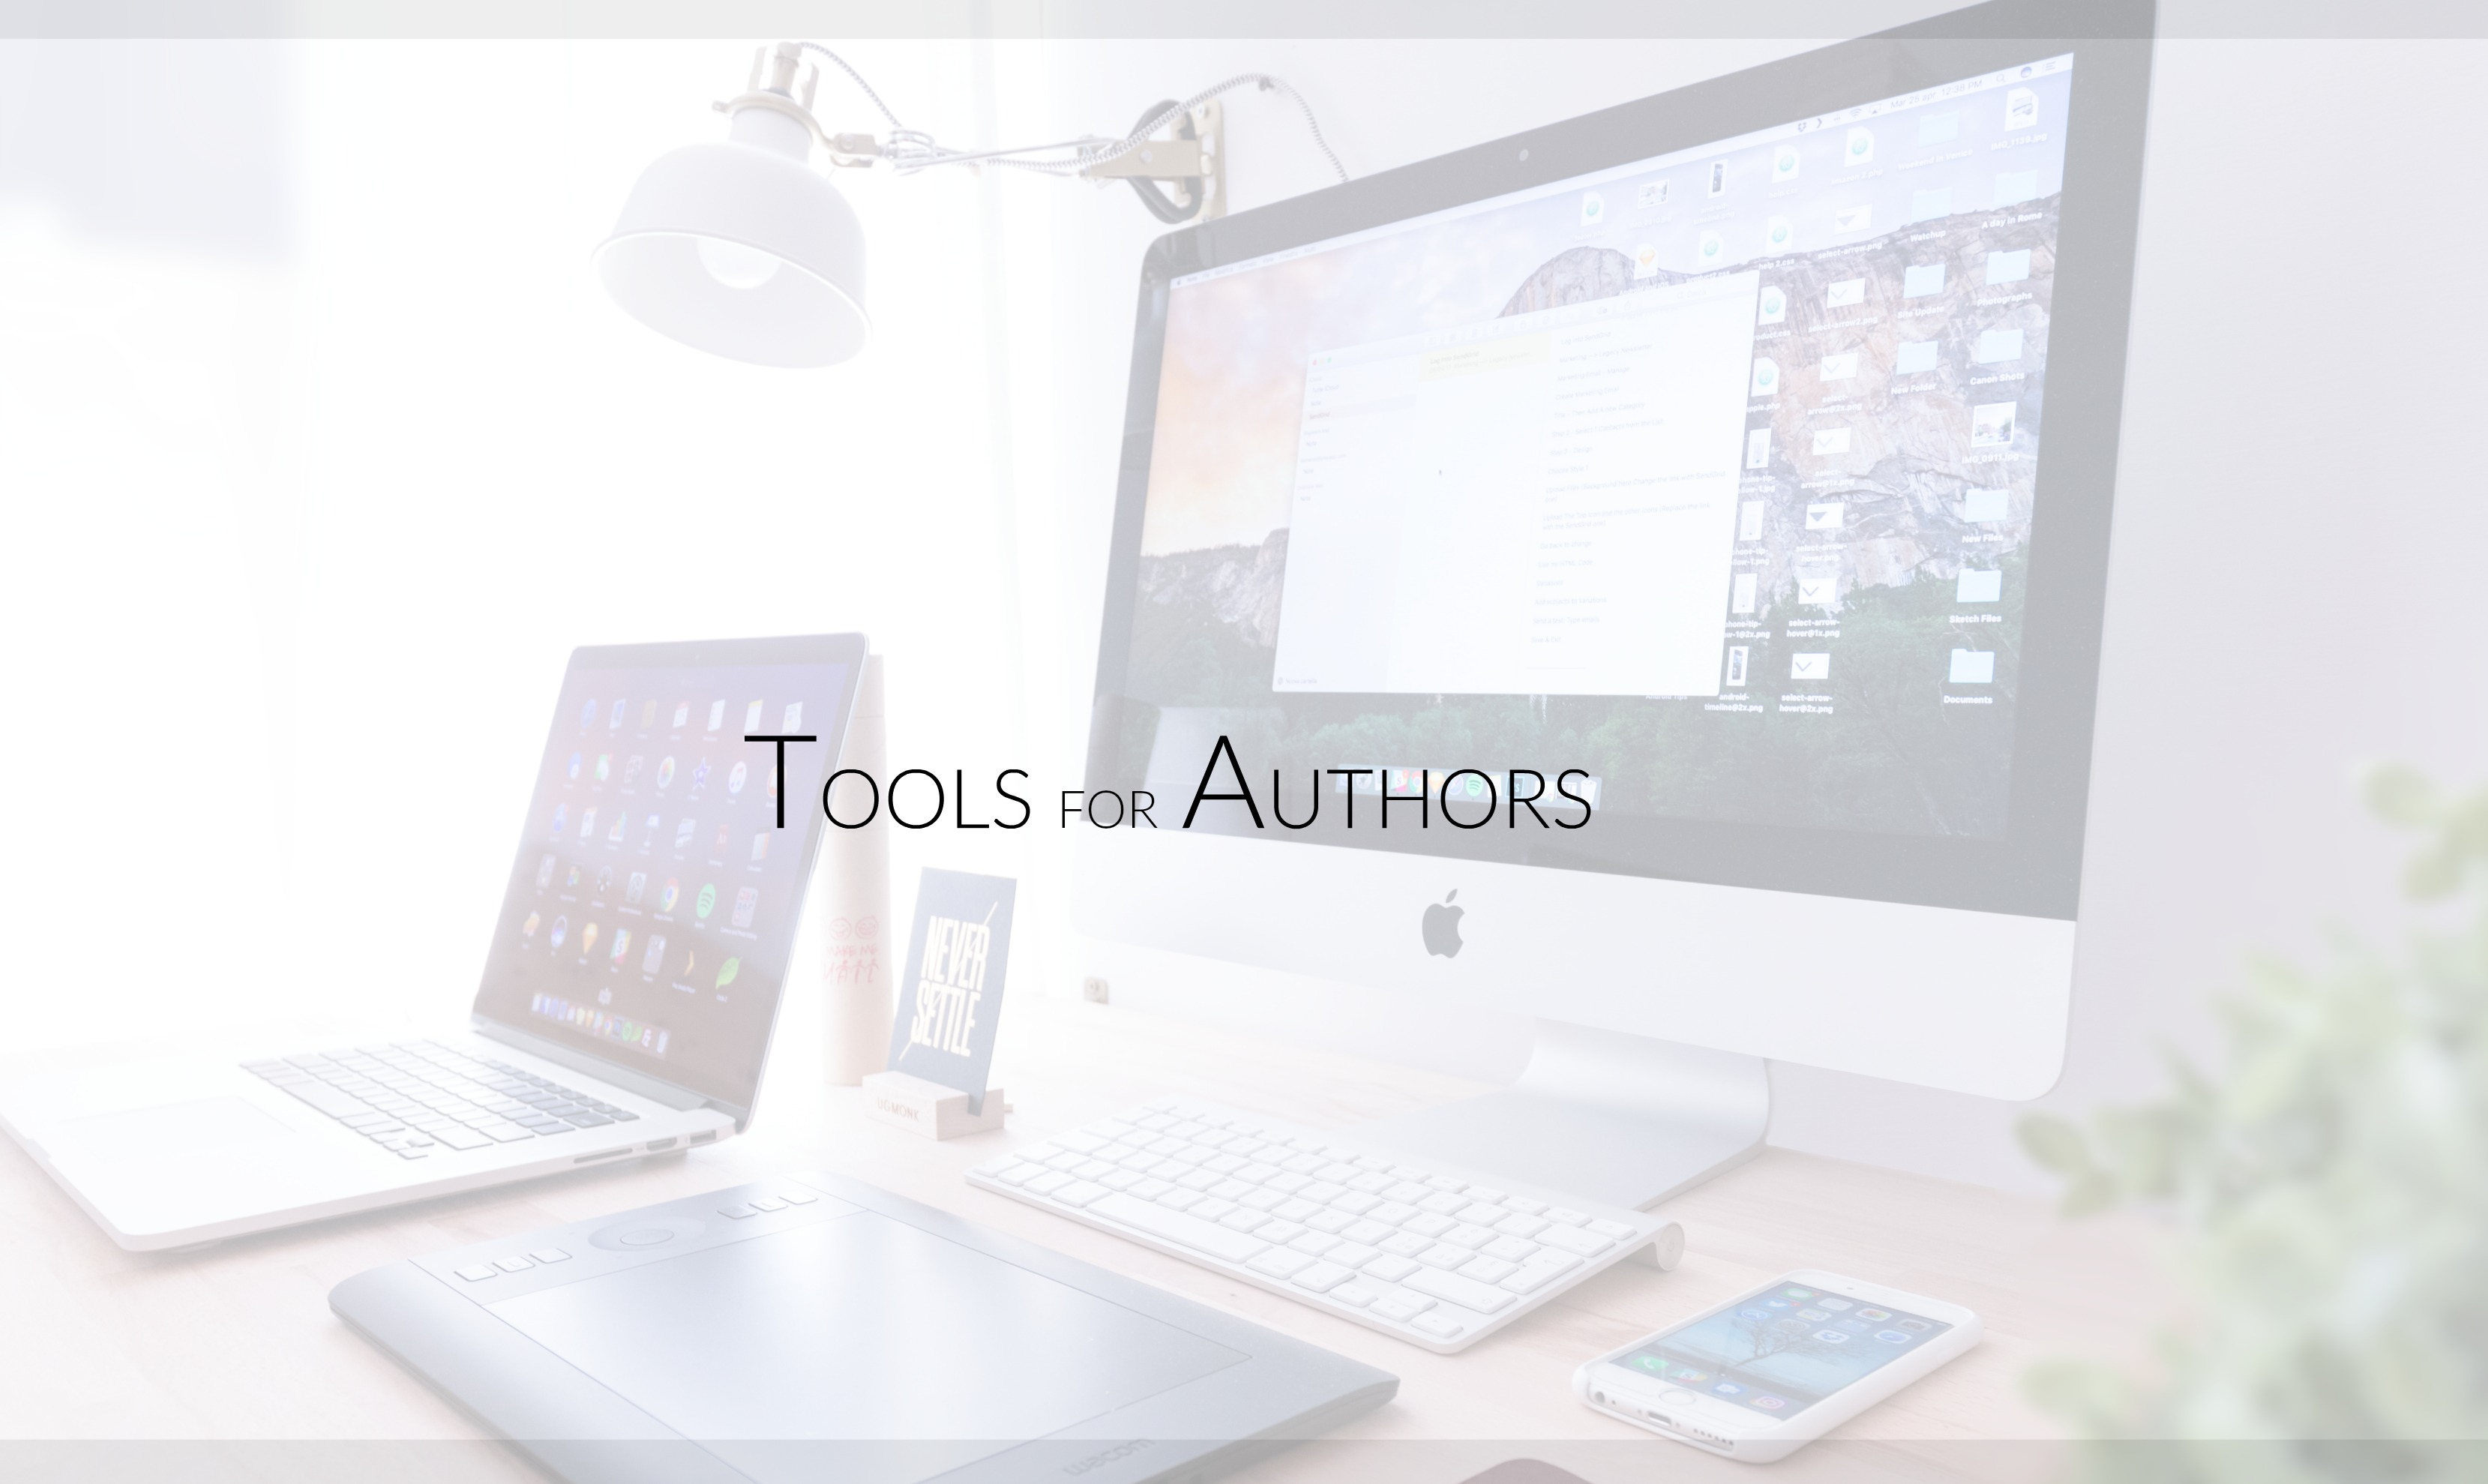 STEVEN MONAHAN TOOLS FOR AUTHORS